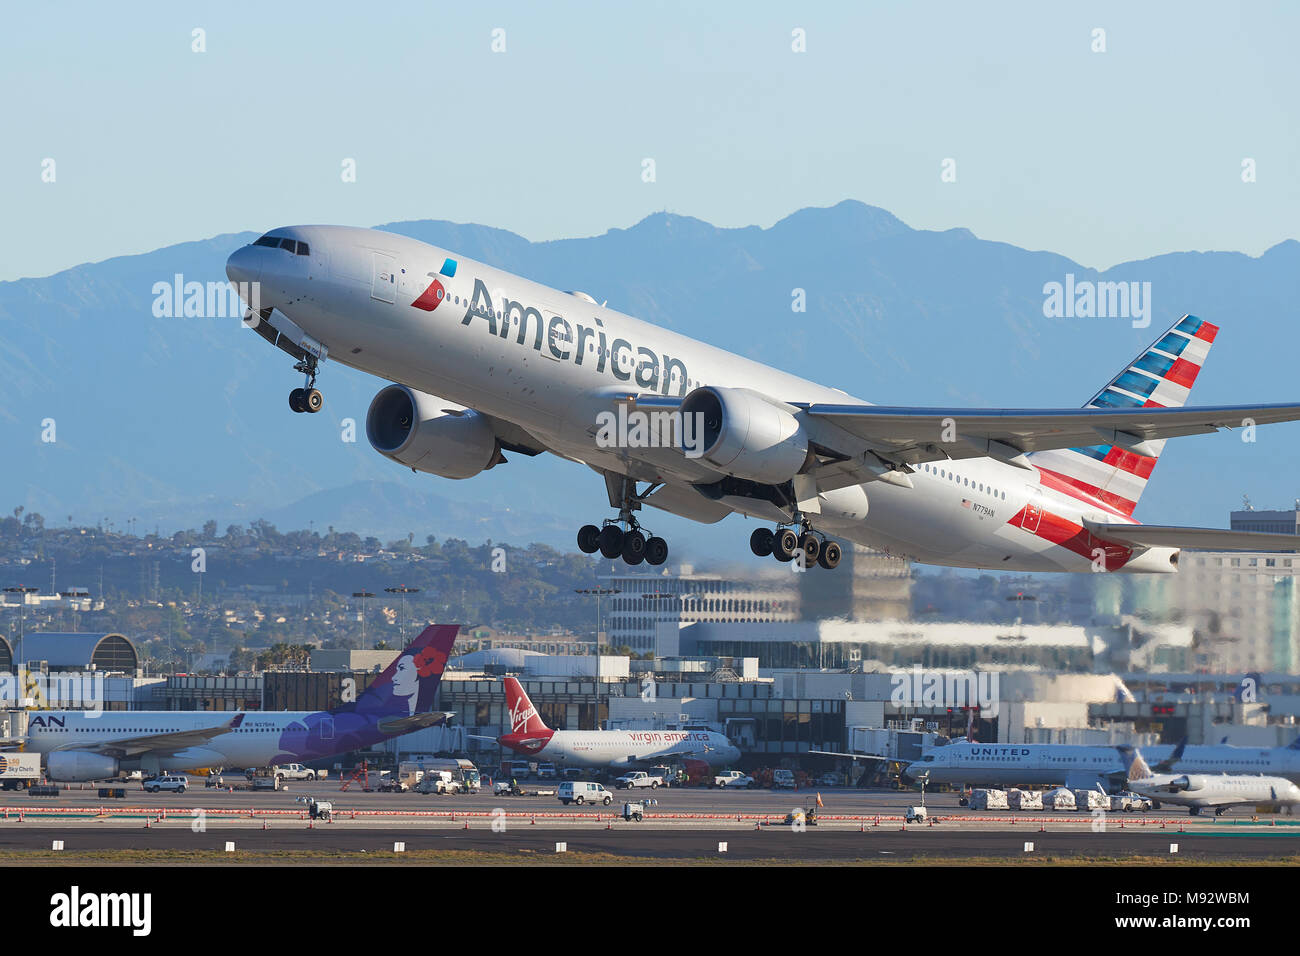 American Airlines Boeing 777 Long Haul Passenger Jet Taking Off From Los Angeles International Airport, LAX, California, USA. - Stock Image